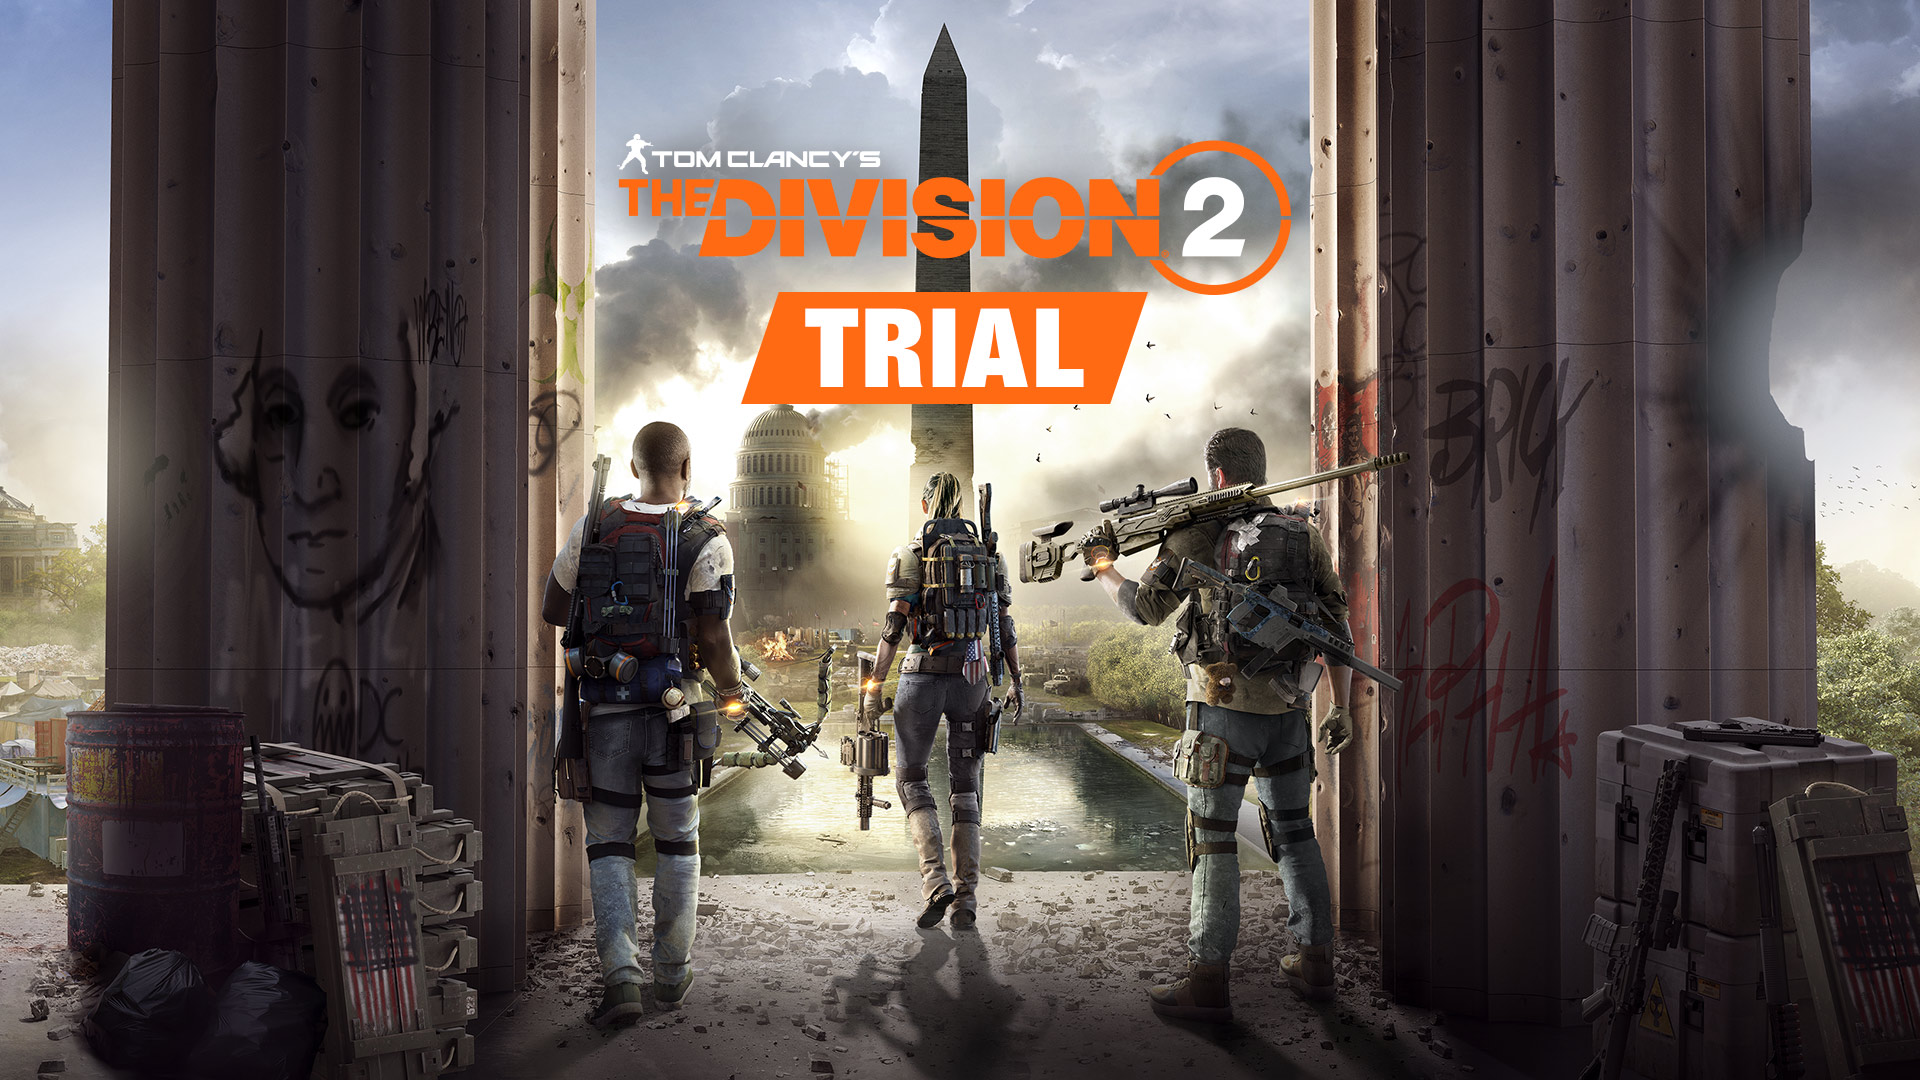 Tom Clancy's The Division 2 Free Trial Begins Today